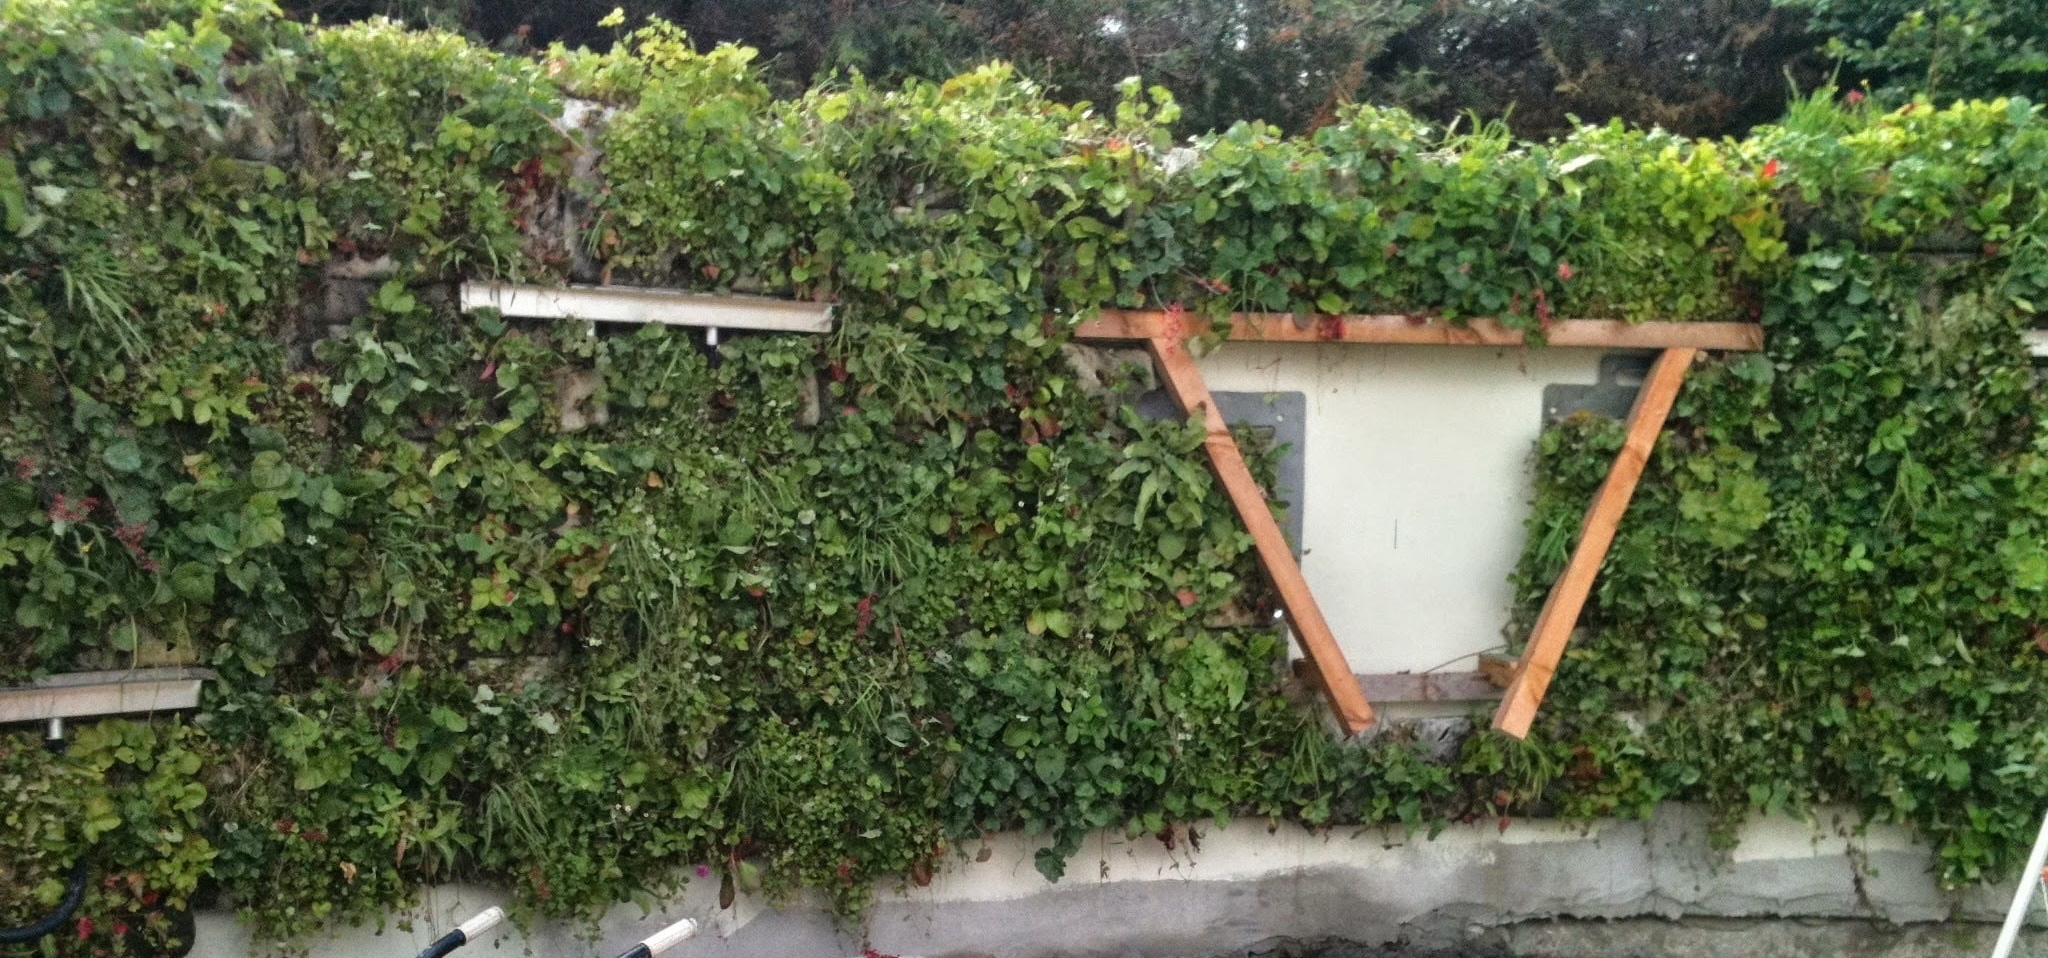 flexi-panel living wall system